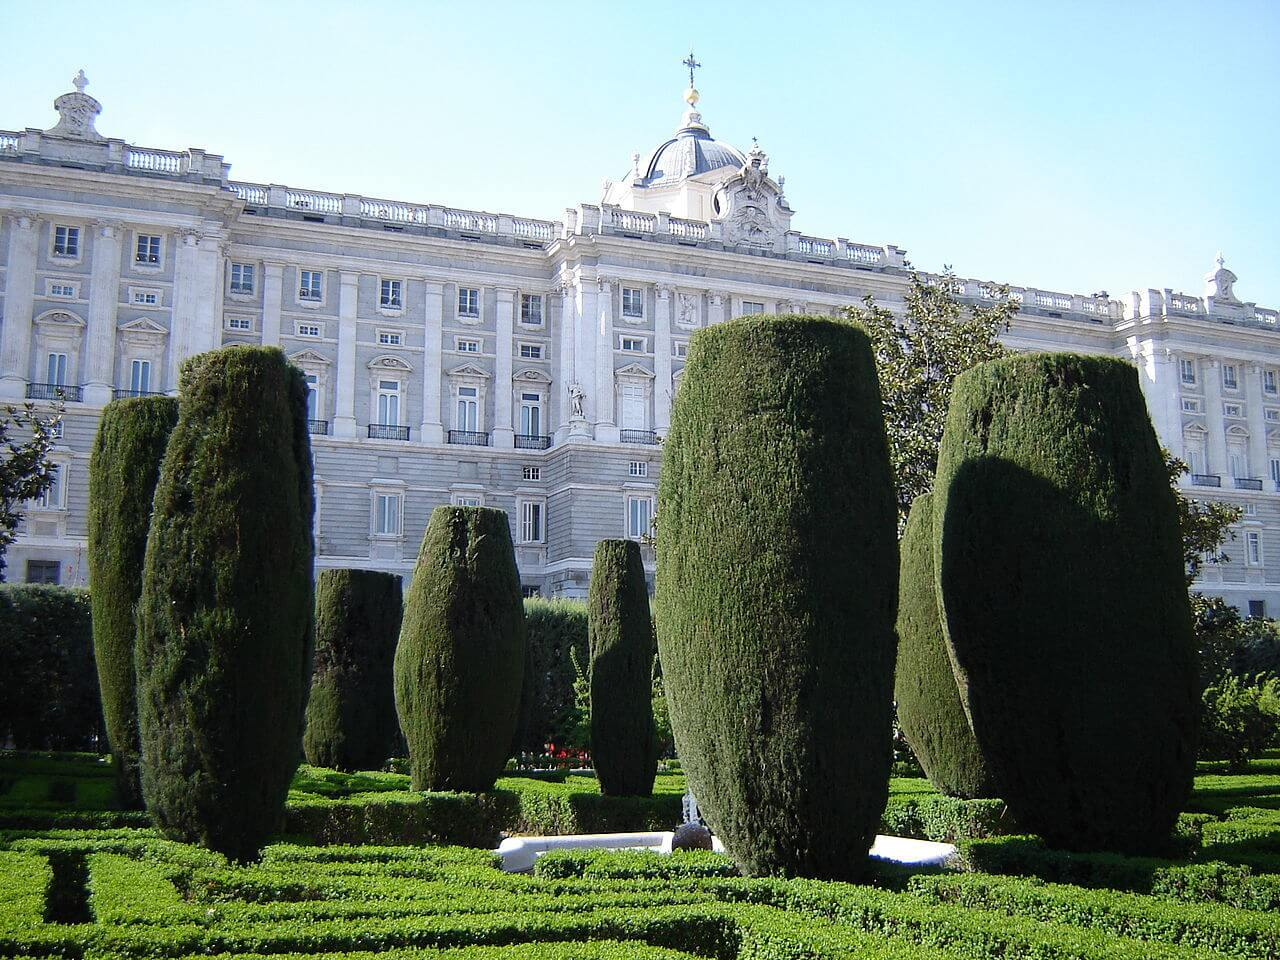 8 parques y jardines de madrid espa a tandem madrid for Parques de madrid espana